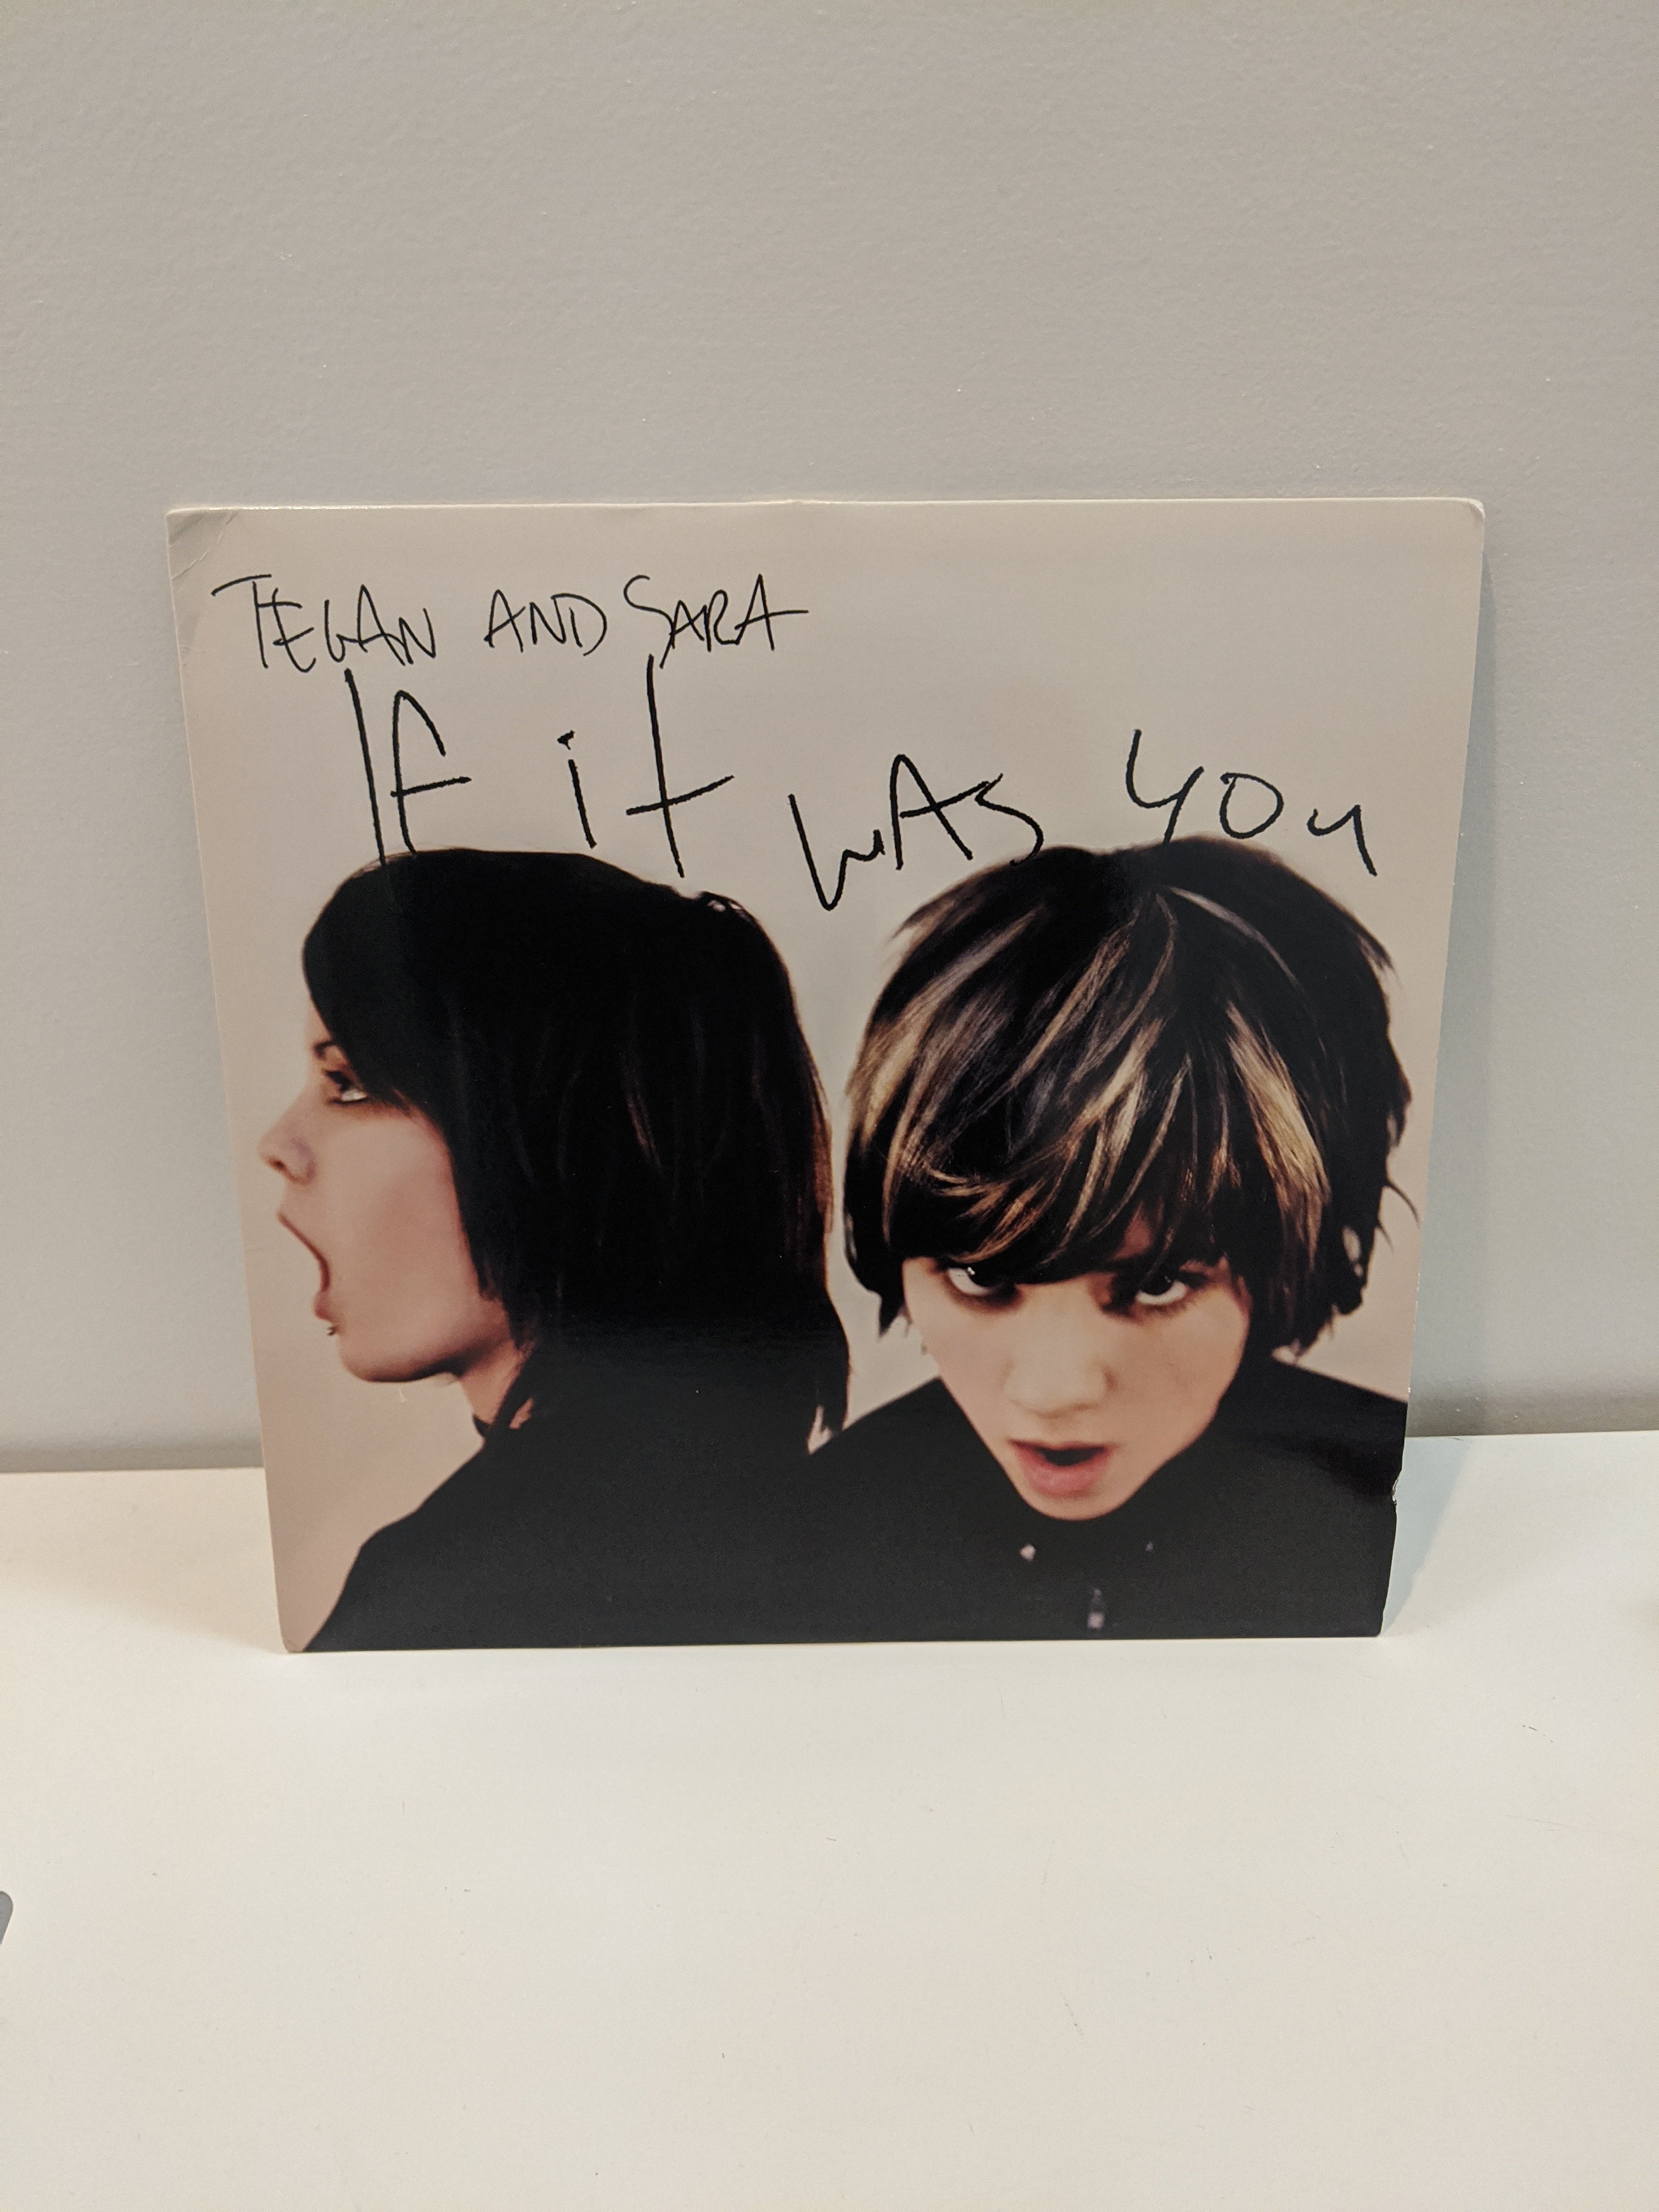 Tegan And Sara - If I Was You Vinyl